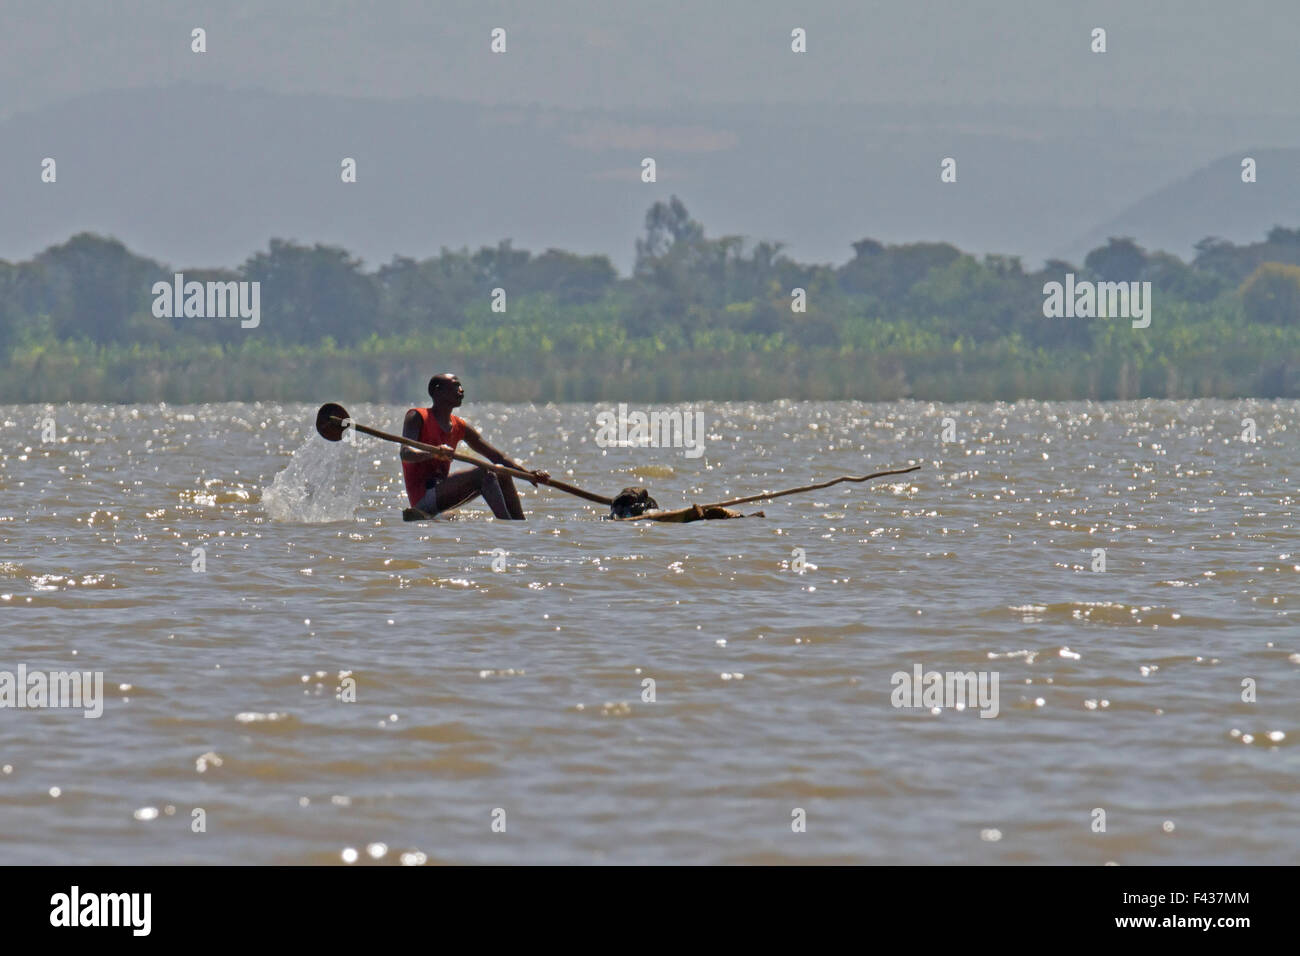 Africa, Ethiopia, Blue Nile river man in a dugout canoe - Stock Image